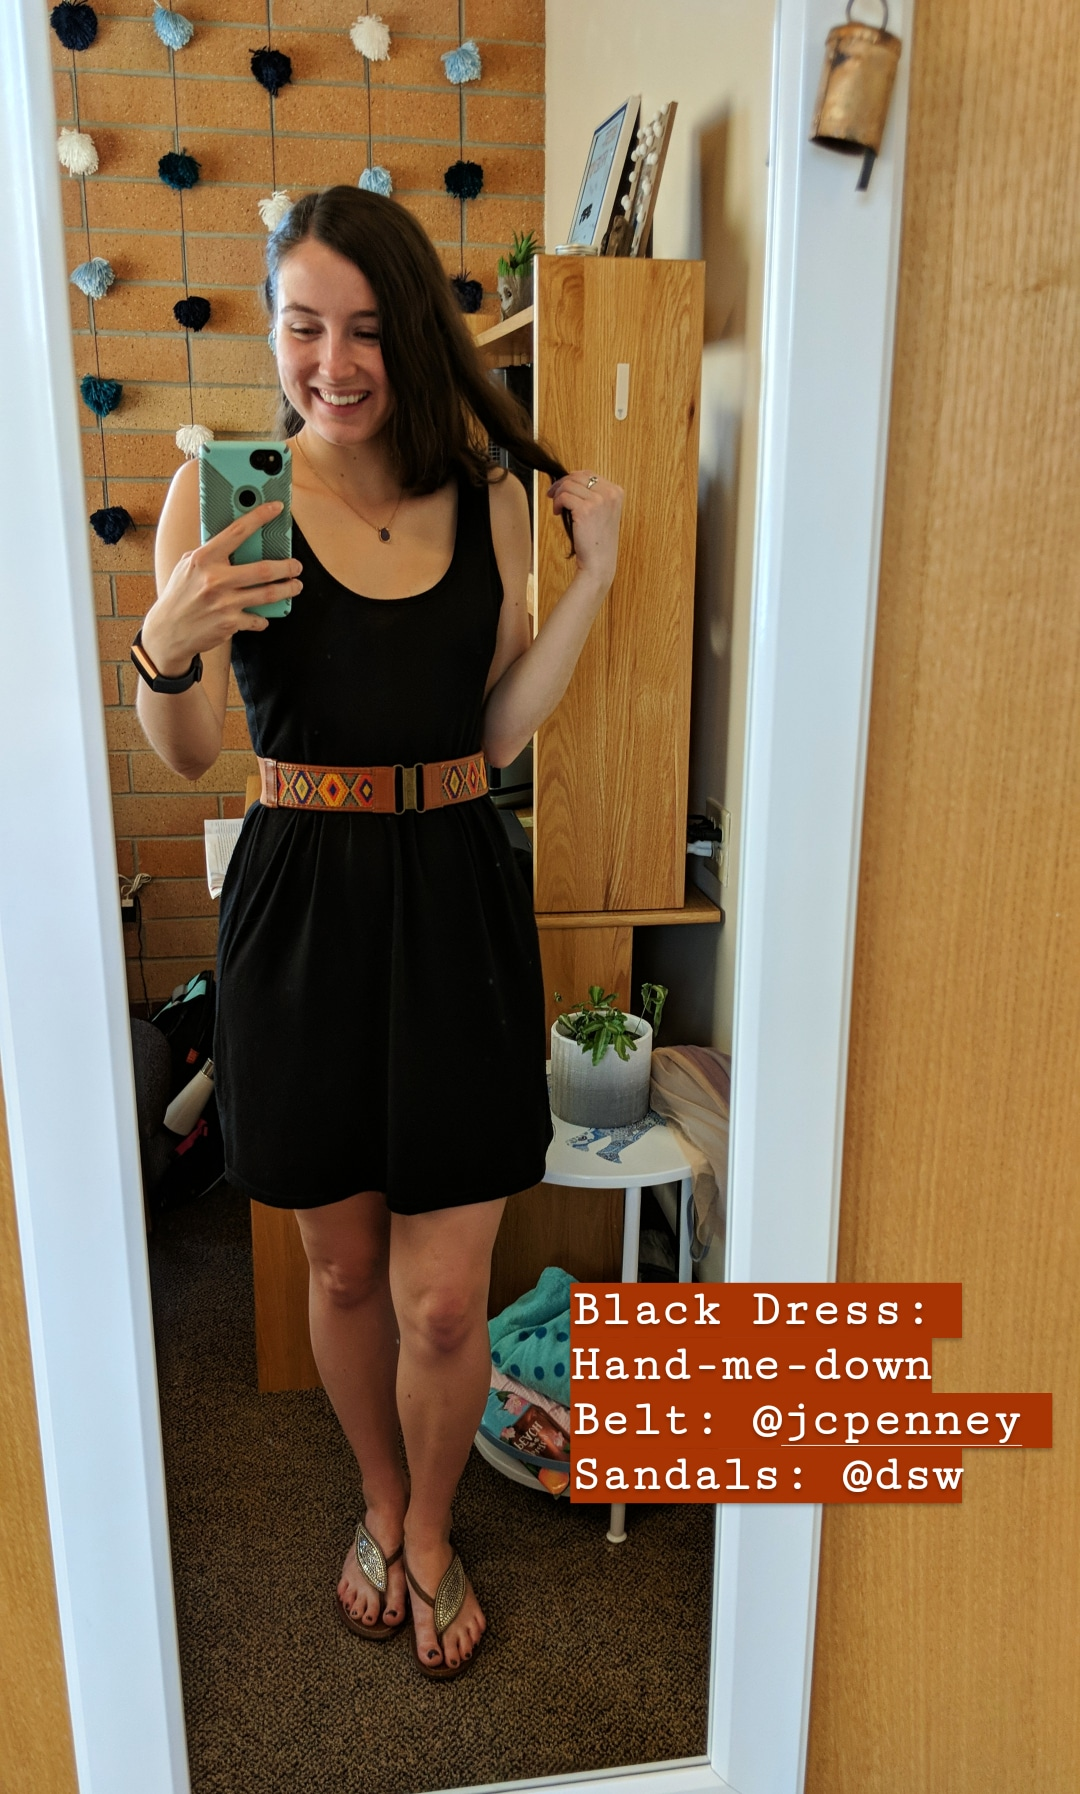 black dress, hand-me-down, leaf sandals, casual fall outfit